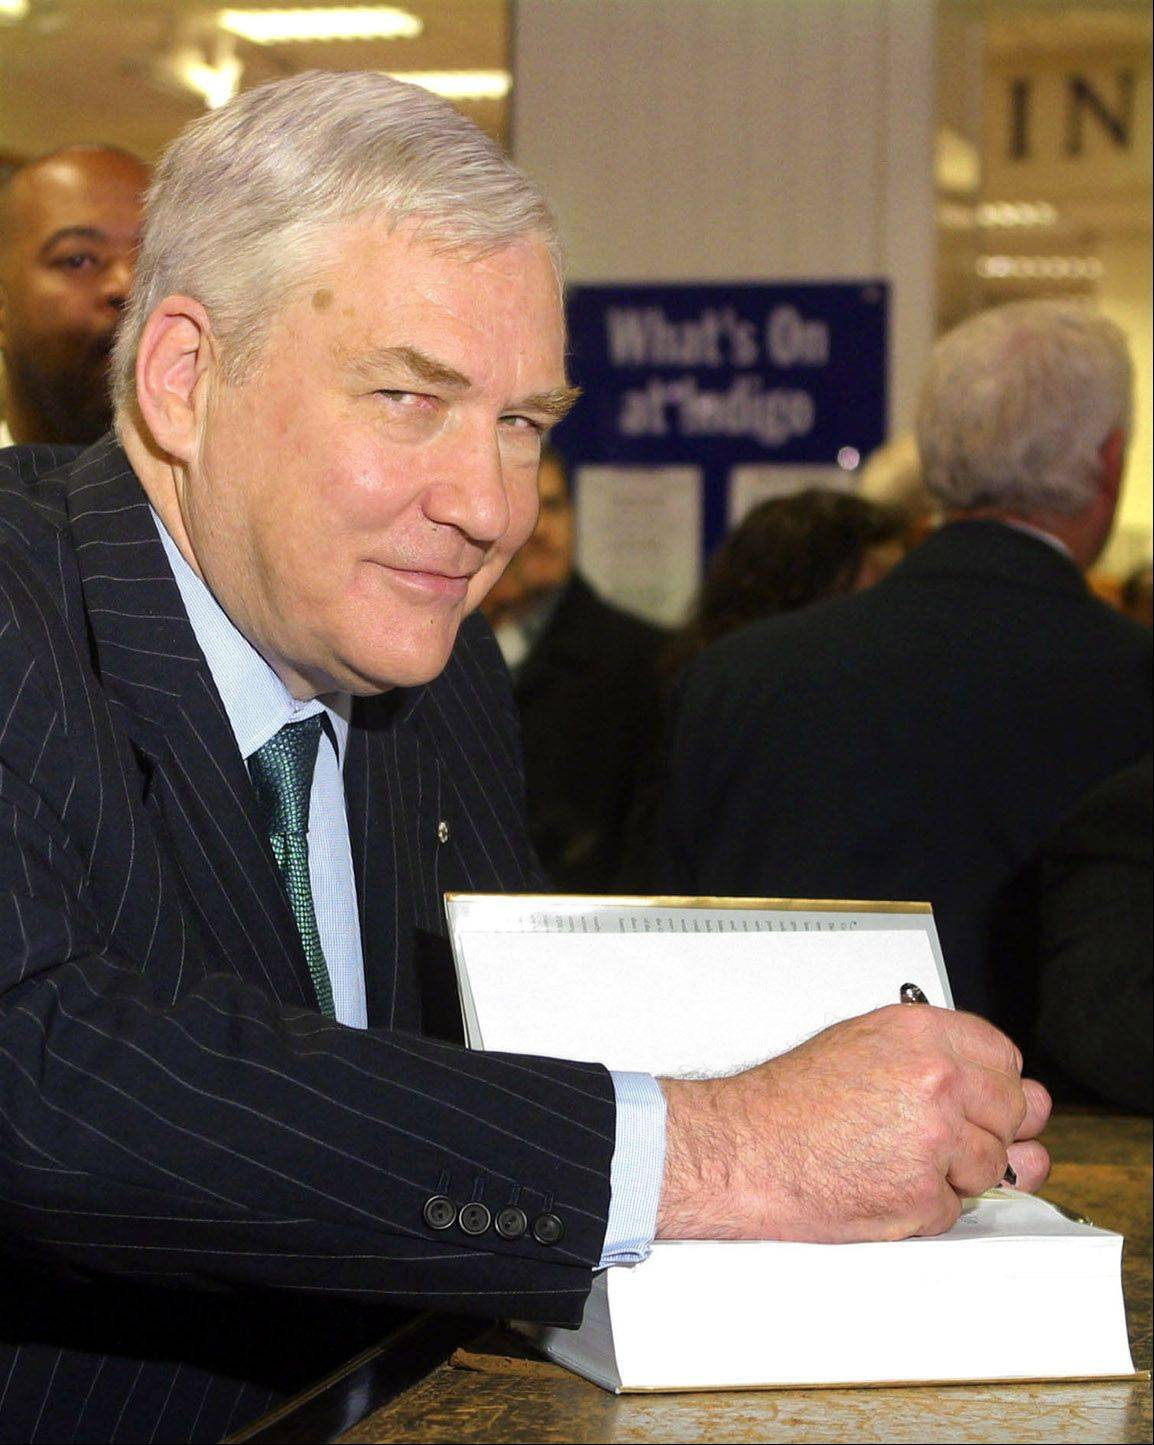 Bloomberg News file photo Conrad Black, who resigned as CEO of Hollinger International Inc., signs a copy of his book �Franklin Delano Roosevelt: Champion of Freedom� at a bookstore in Toronto, Canada, in 2003.